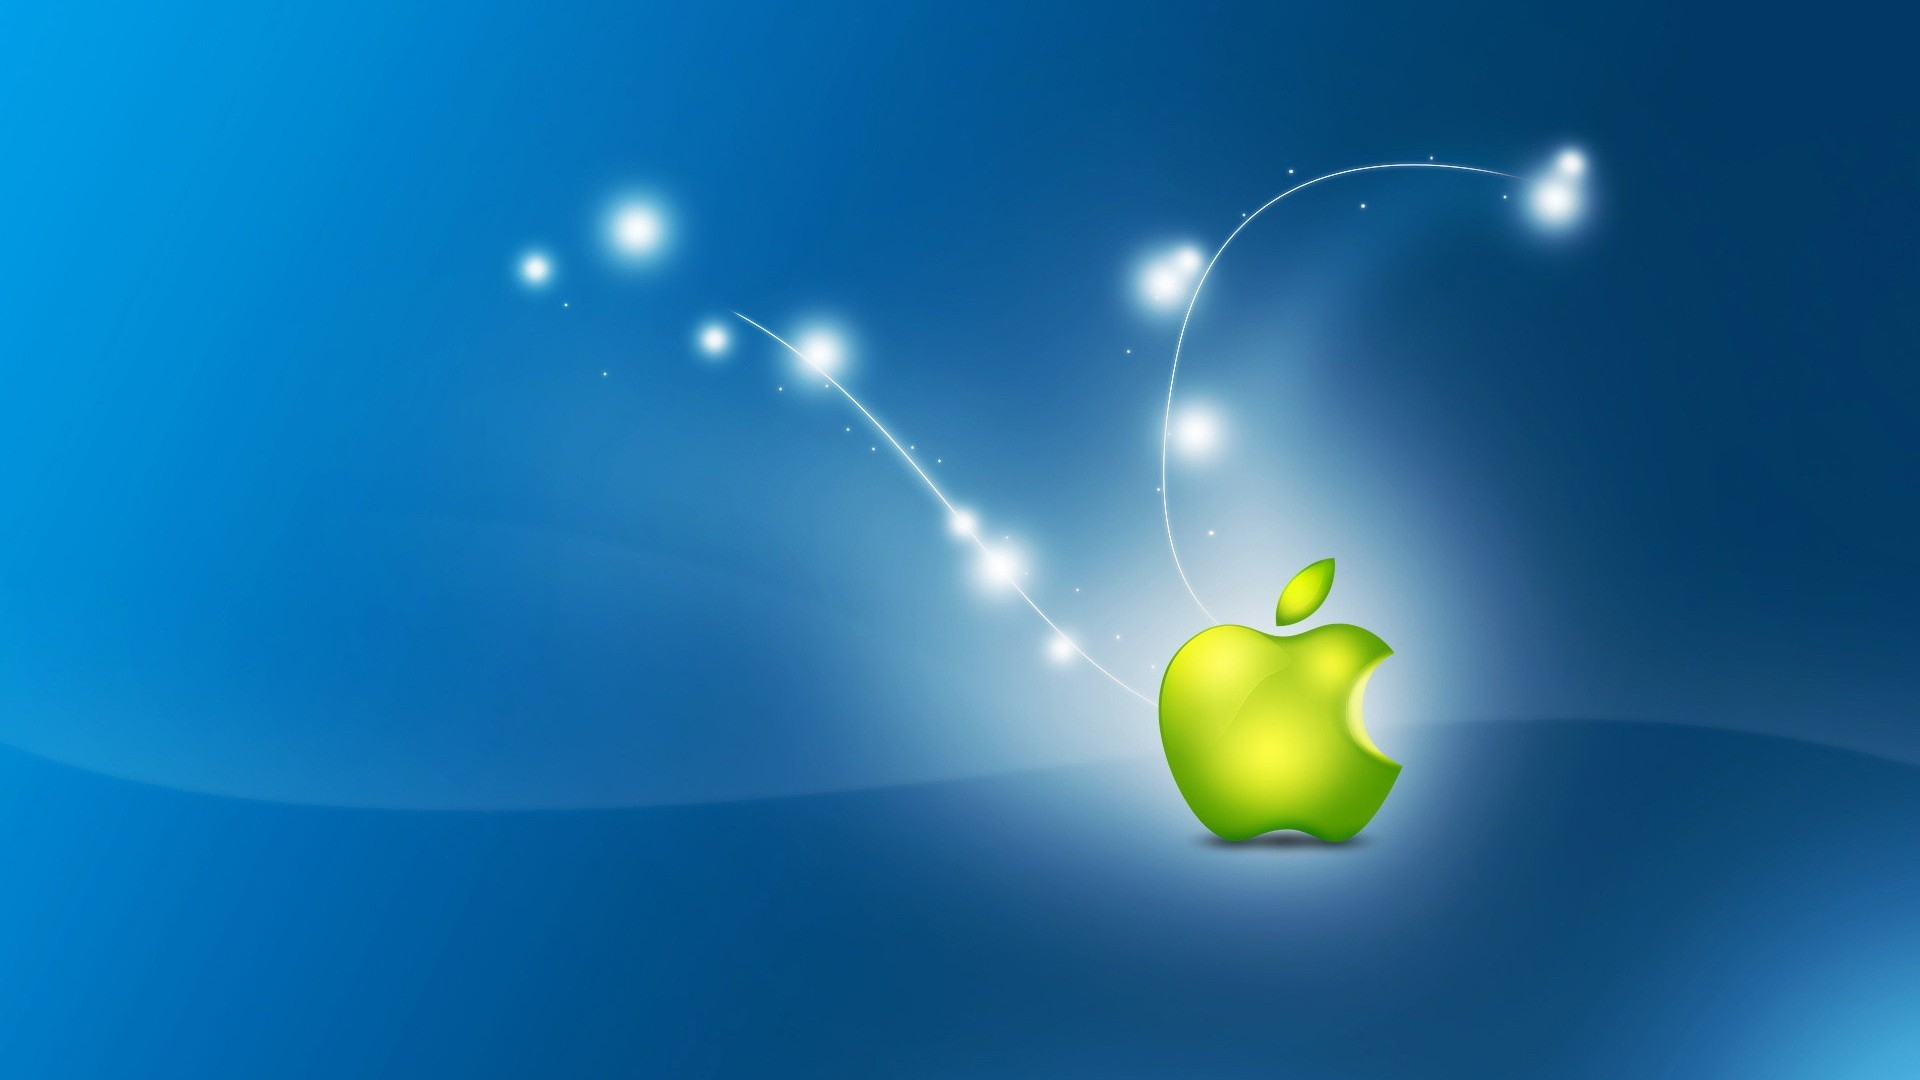 Apple Wallpaper Backgrounds #6946718